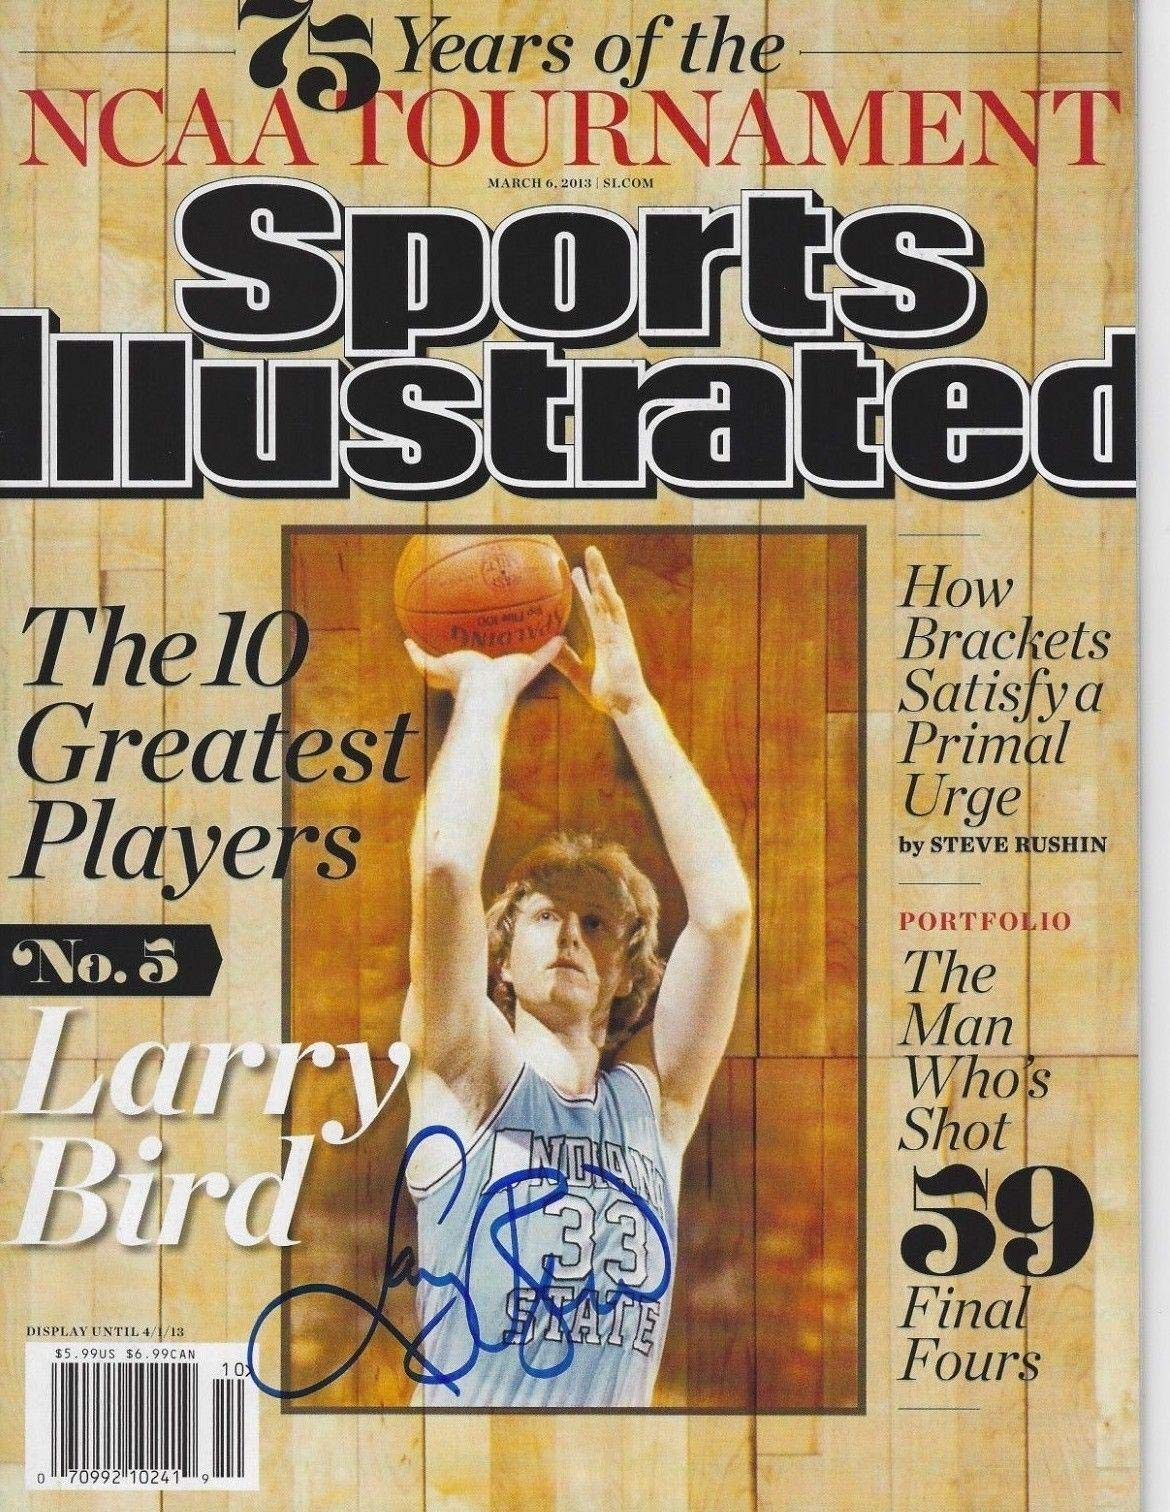 LARRY BIRD (Indiana St) Signed SPORTS ILLUSTRATED with Schwartz COA (NO LABEL) Autographed NBA Magazines